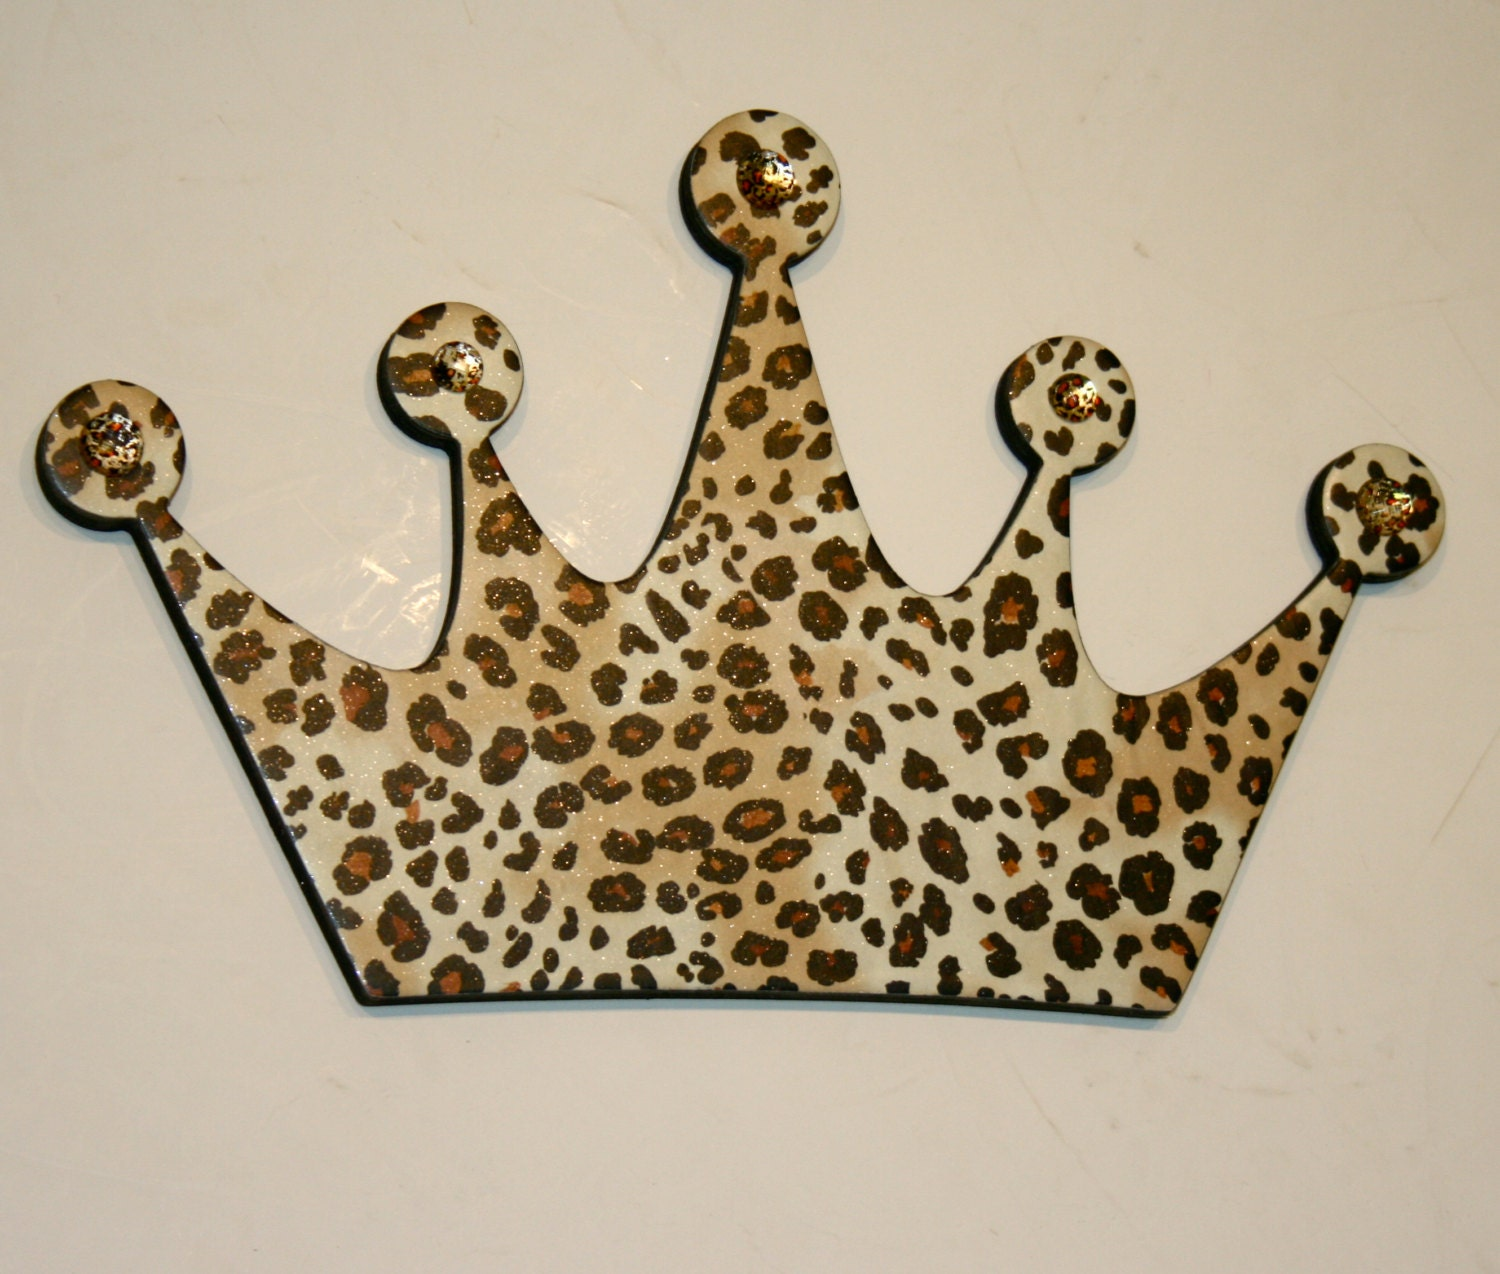 Leopard Princess crown wall decor Diva wall decor Leopard